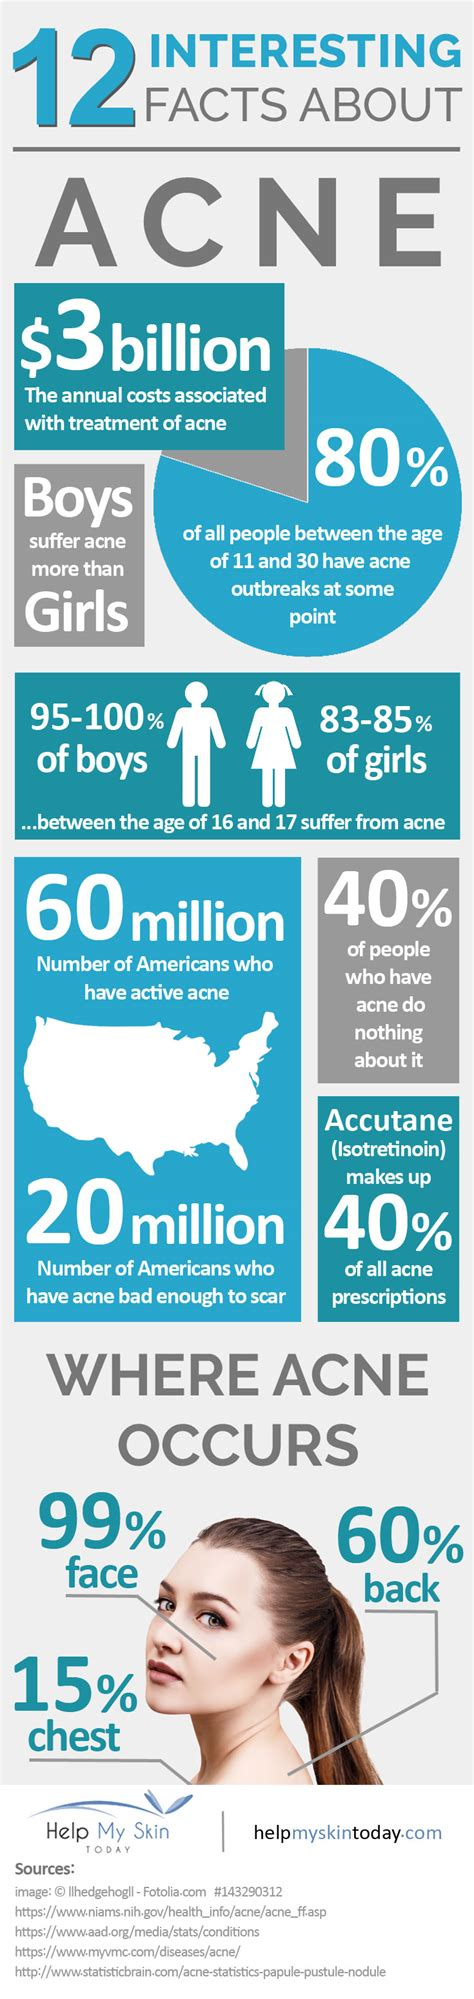 interesting facts about acne picture 3